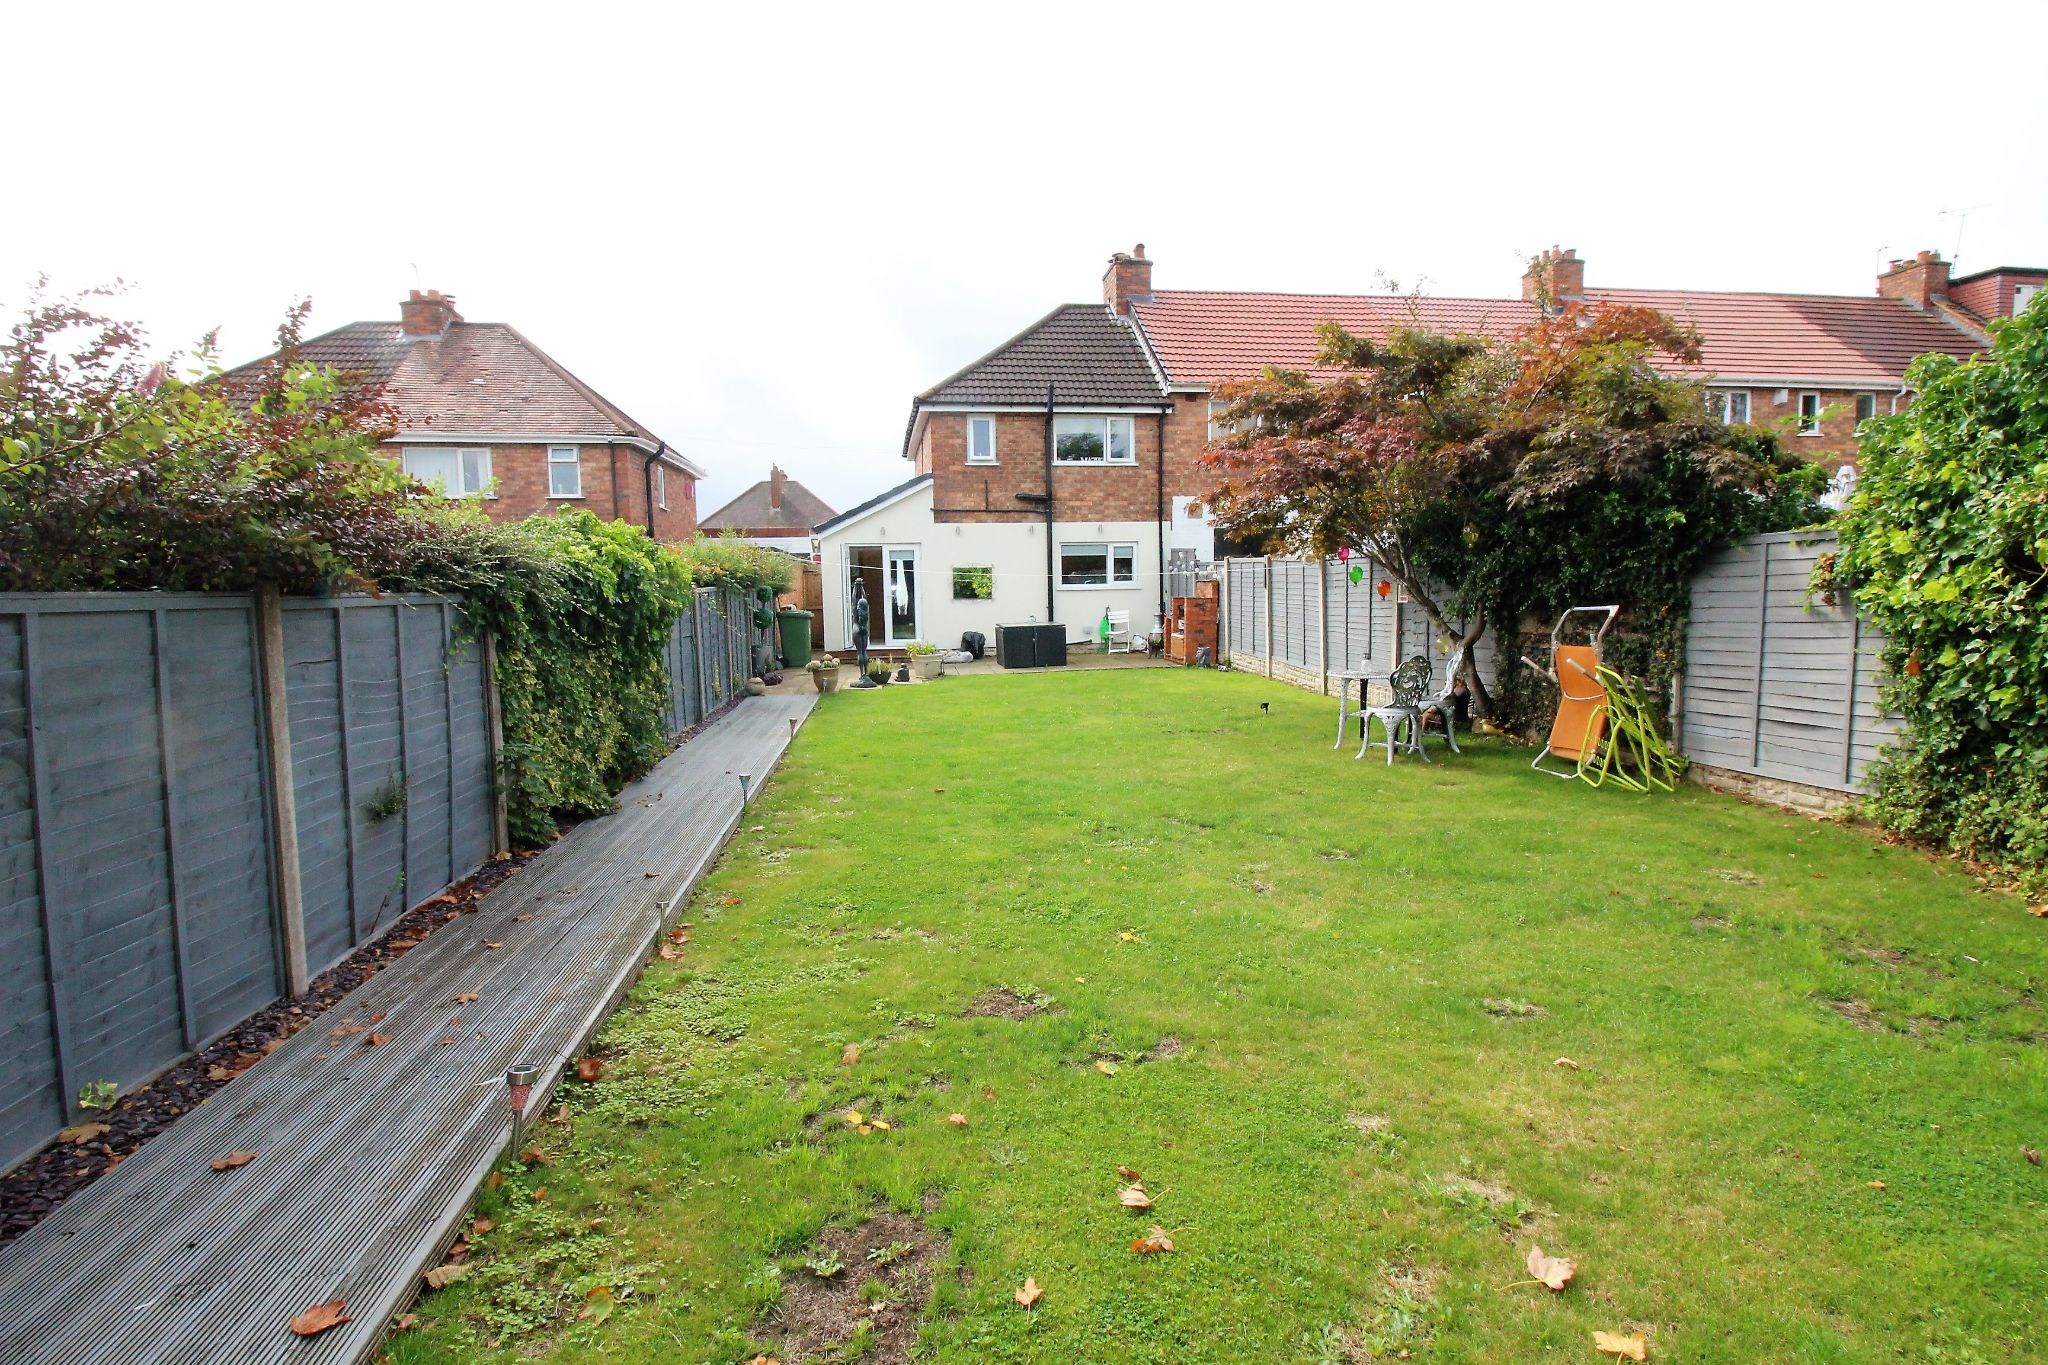 2 bedroom end terraced house For Sale in Solihull - Photograph 13.